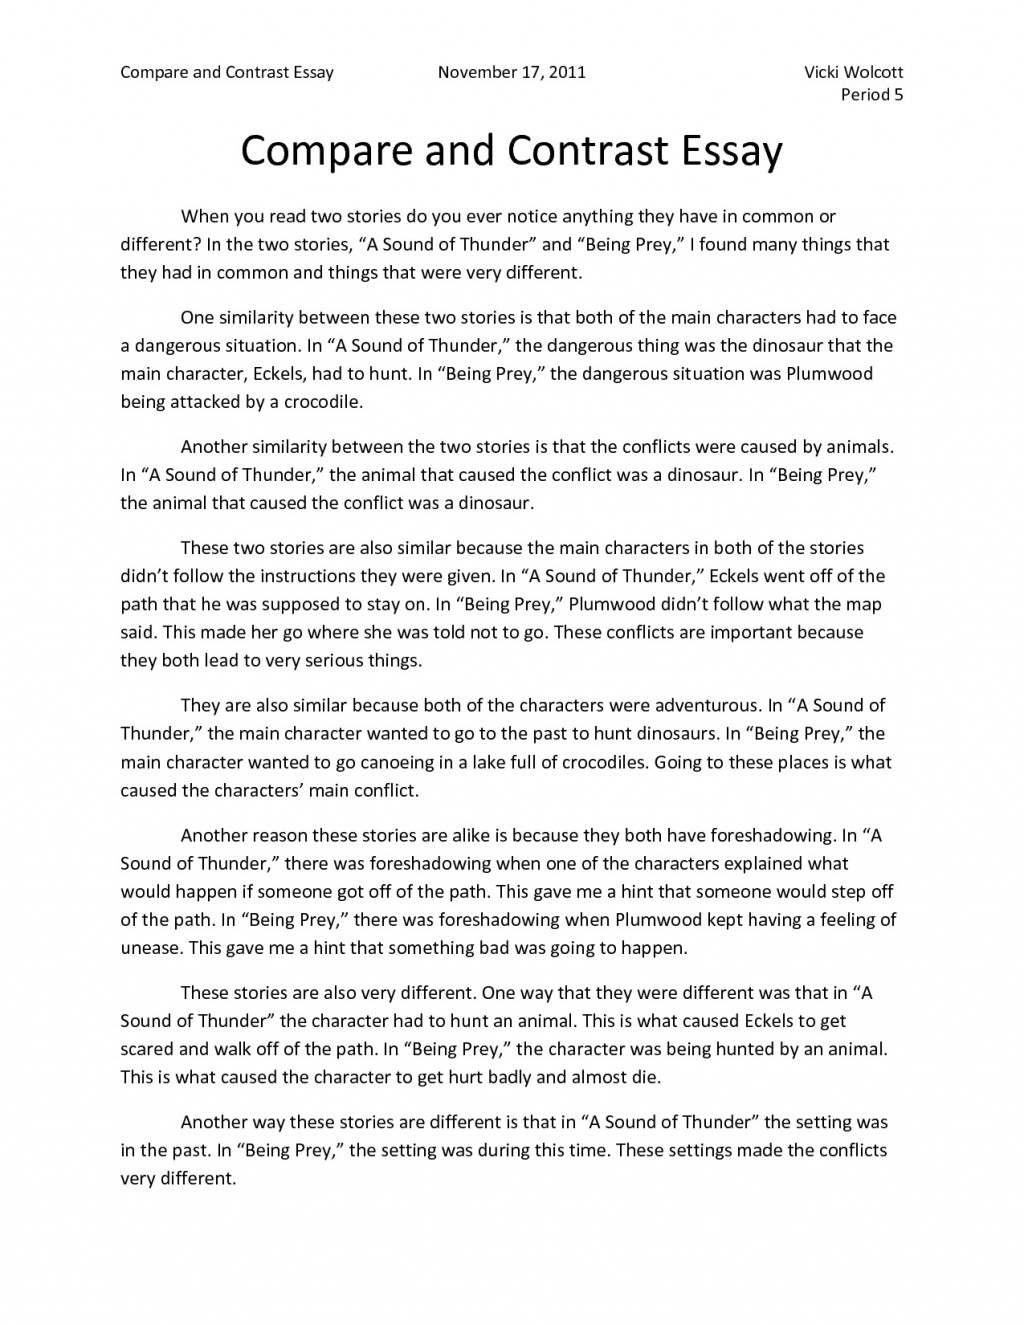 014 Comparingnd Contrasting Essay Example Satire Examples Of Comparison Contrast Essays Com How To Write Fascinating A On Obesity Outline Essay-example Large